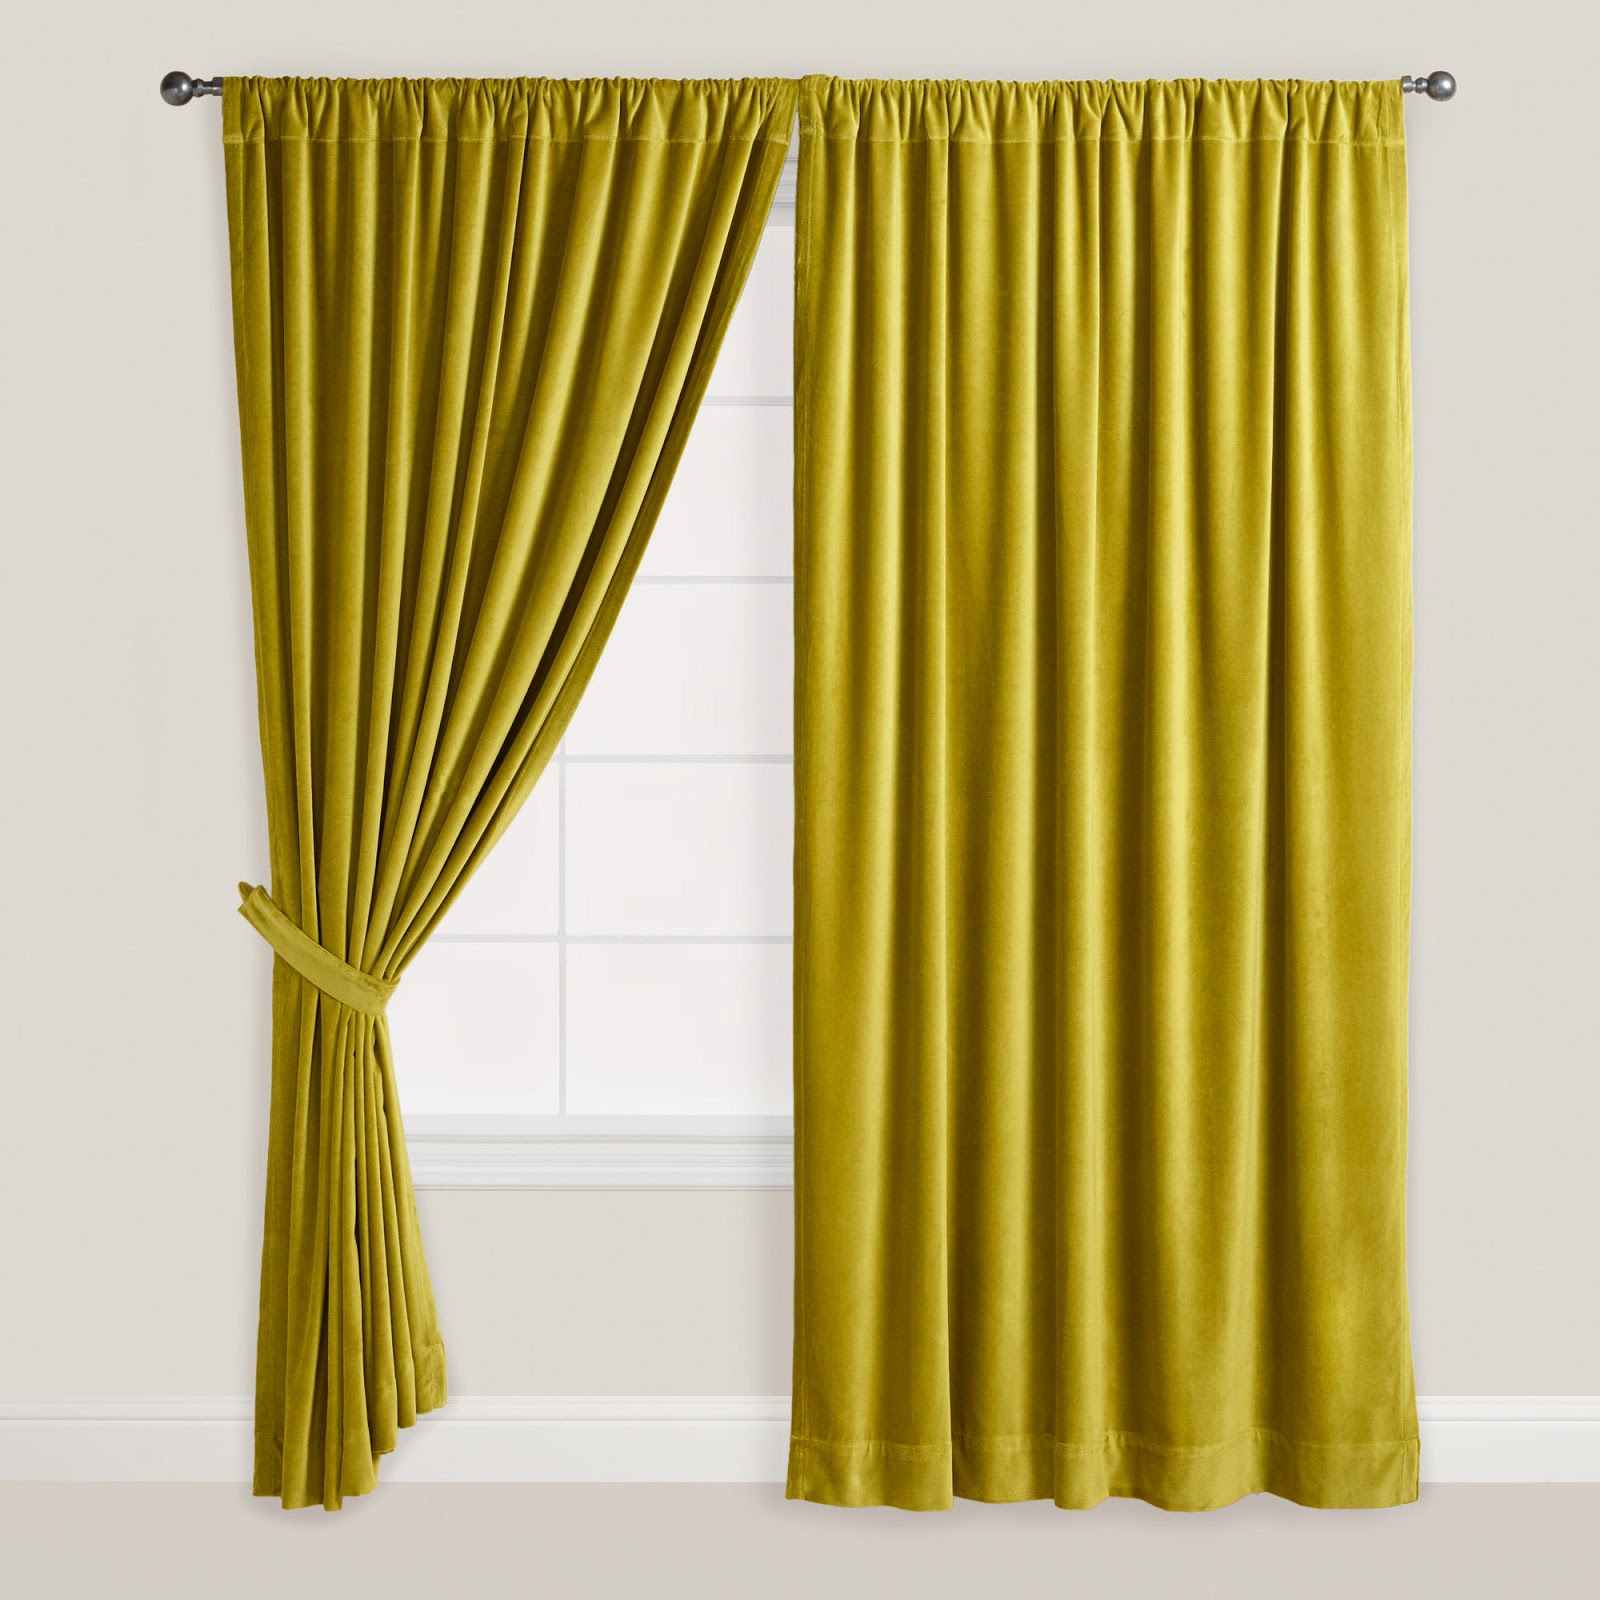 Double Skin Curtain Wall Swag Shower With Valance Curtains